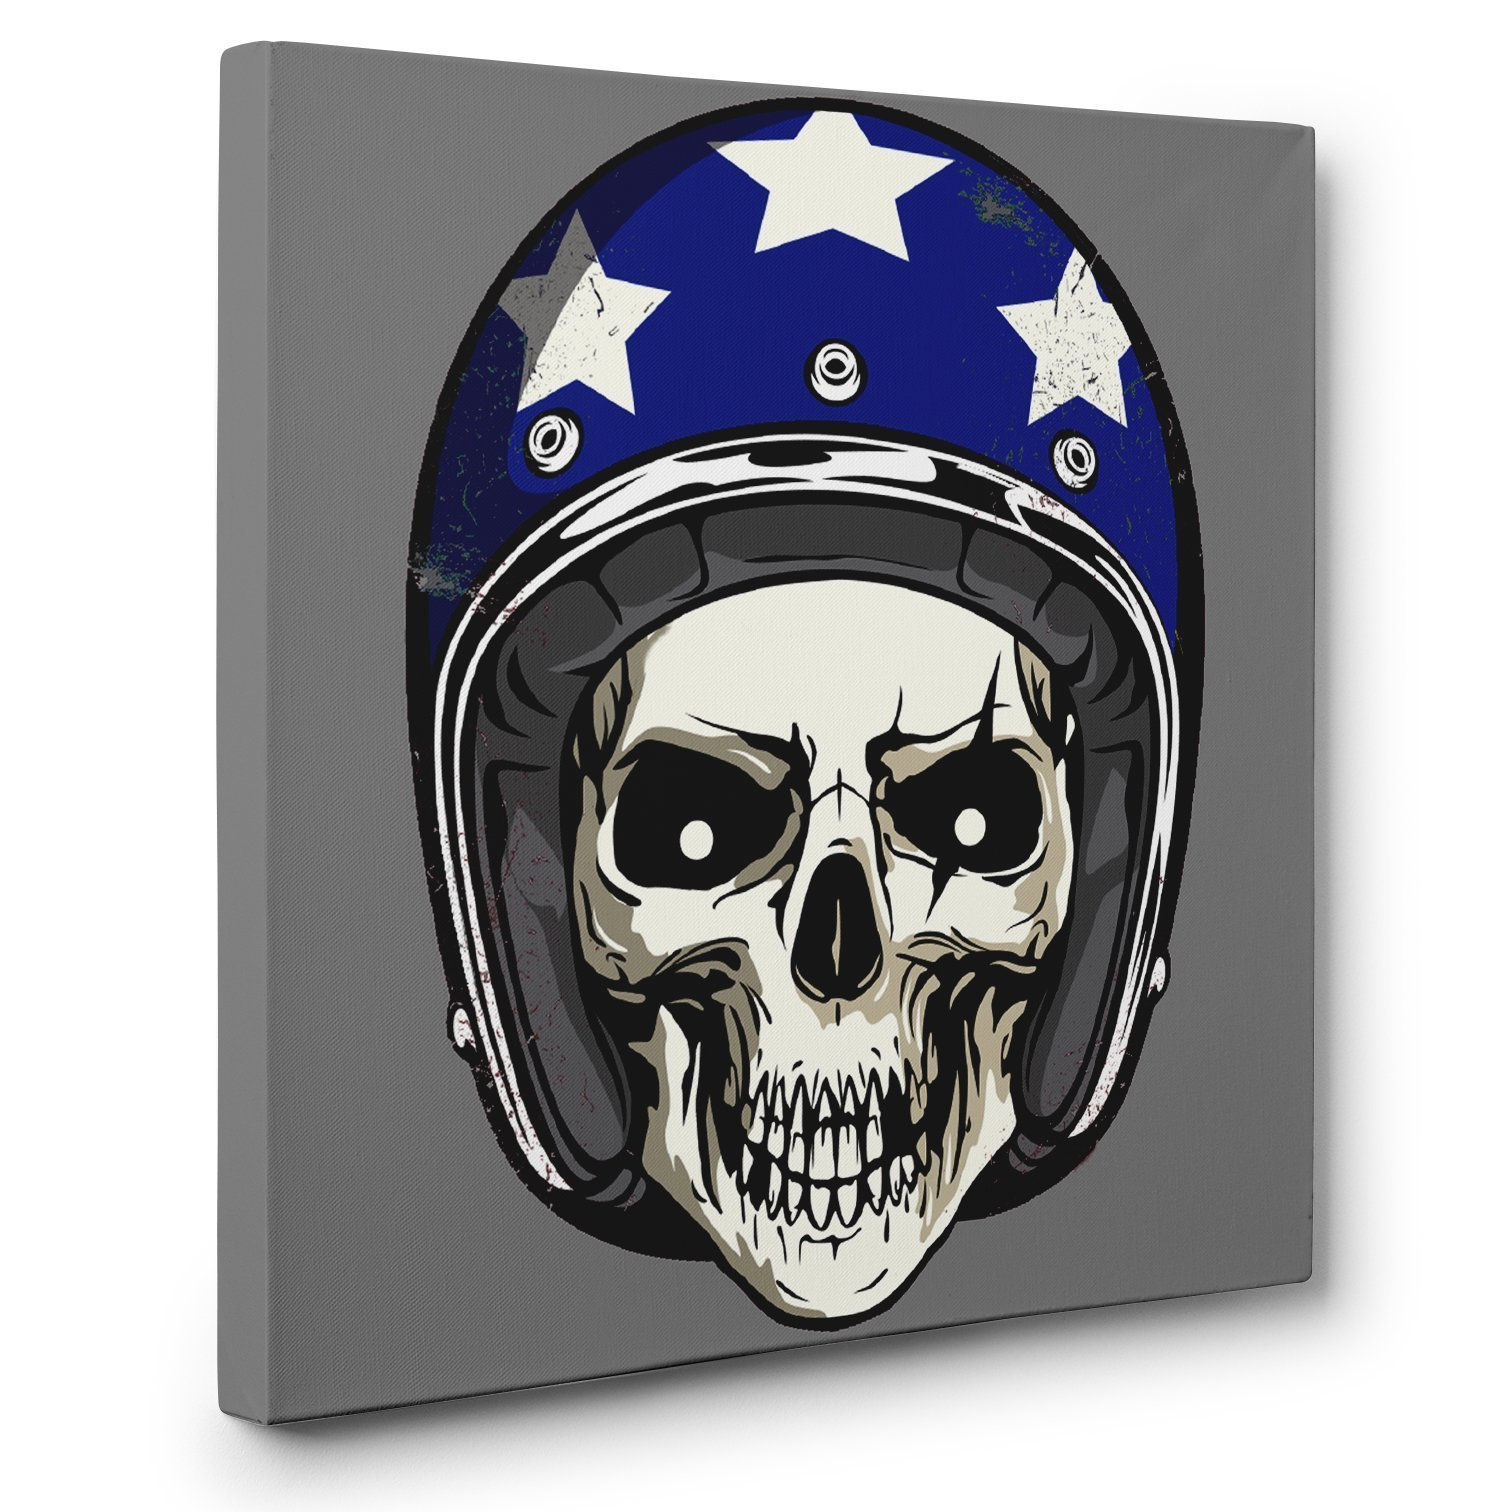 Skull American Flag Helmet SKULL CANVAS Wall Art Halloween Home Décor